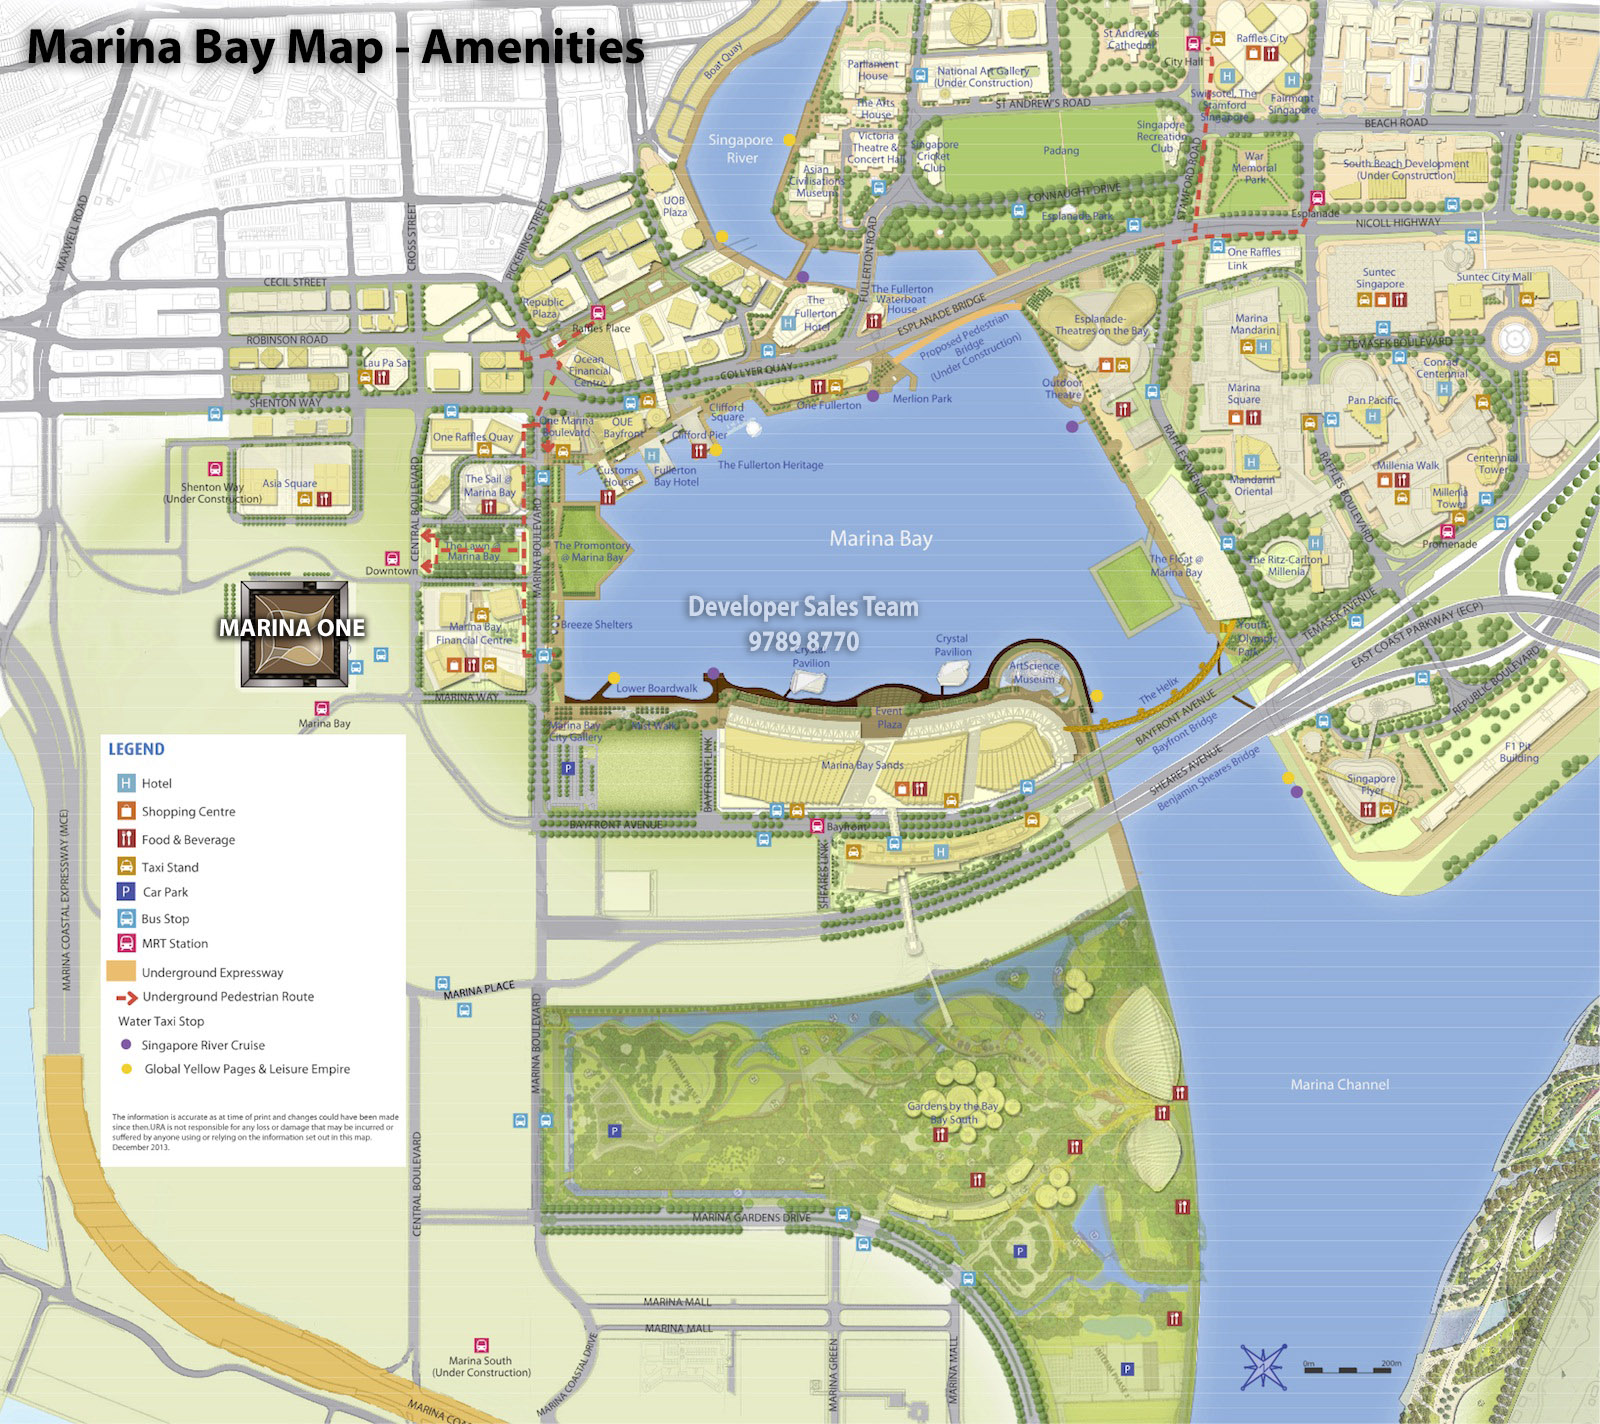 MarinaBayMap amenities